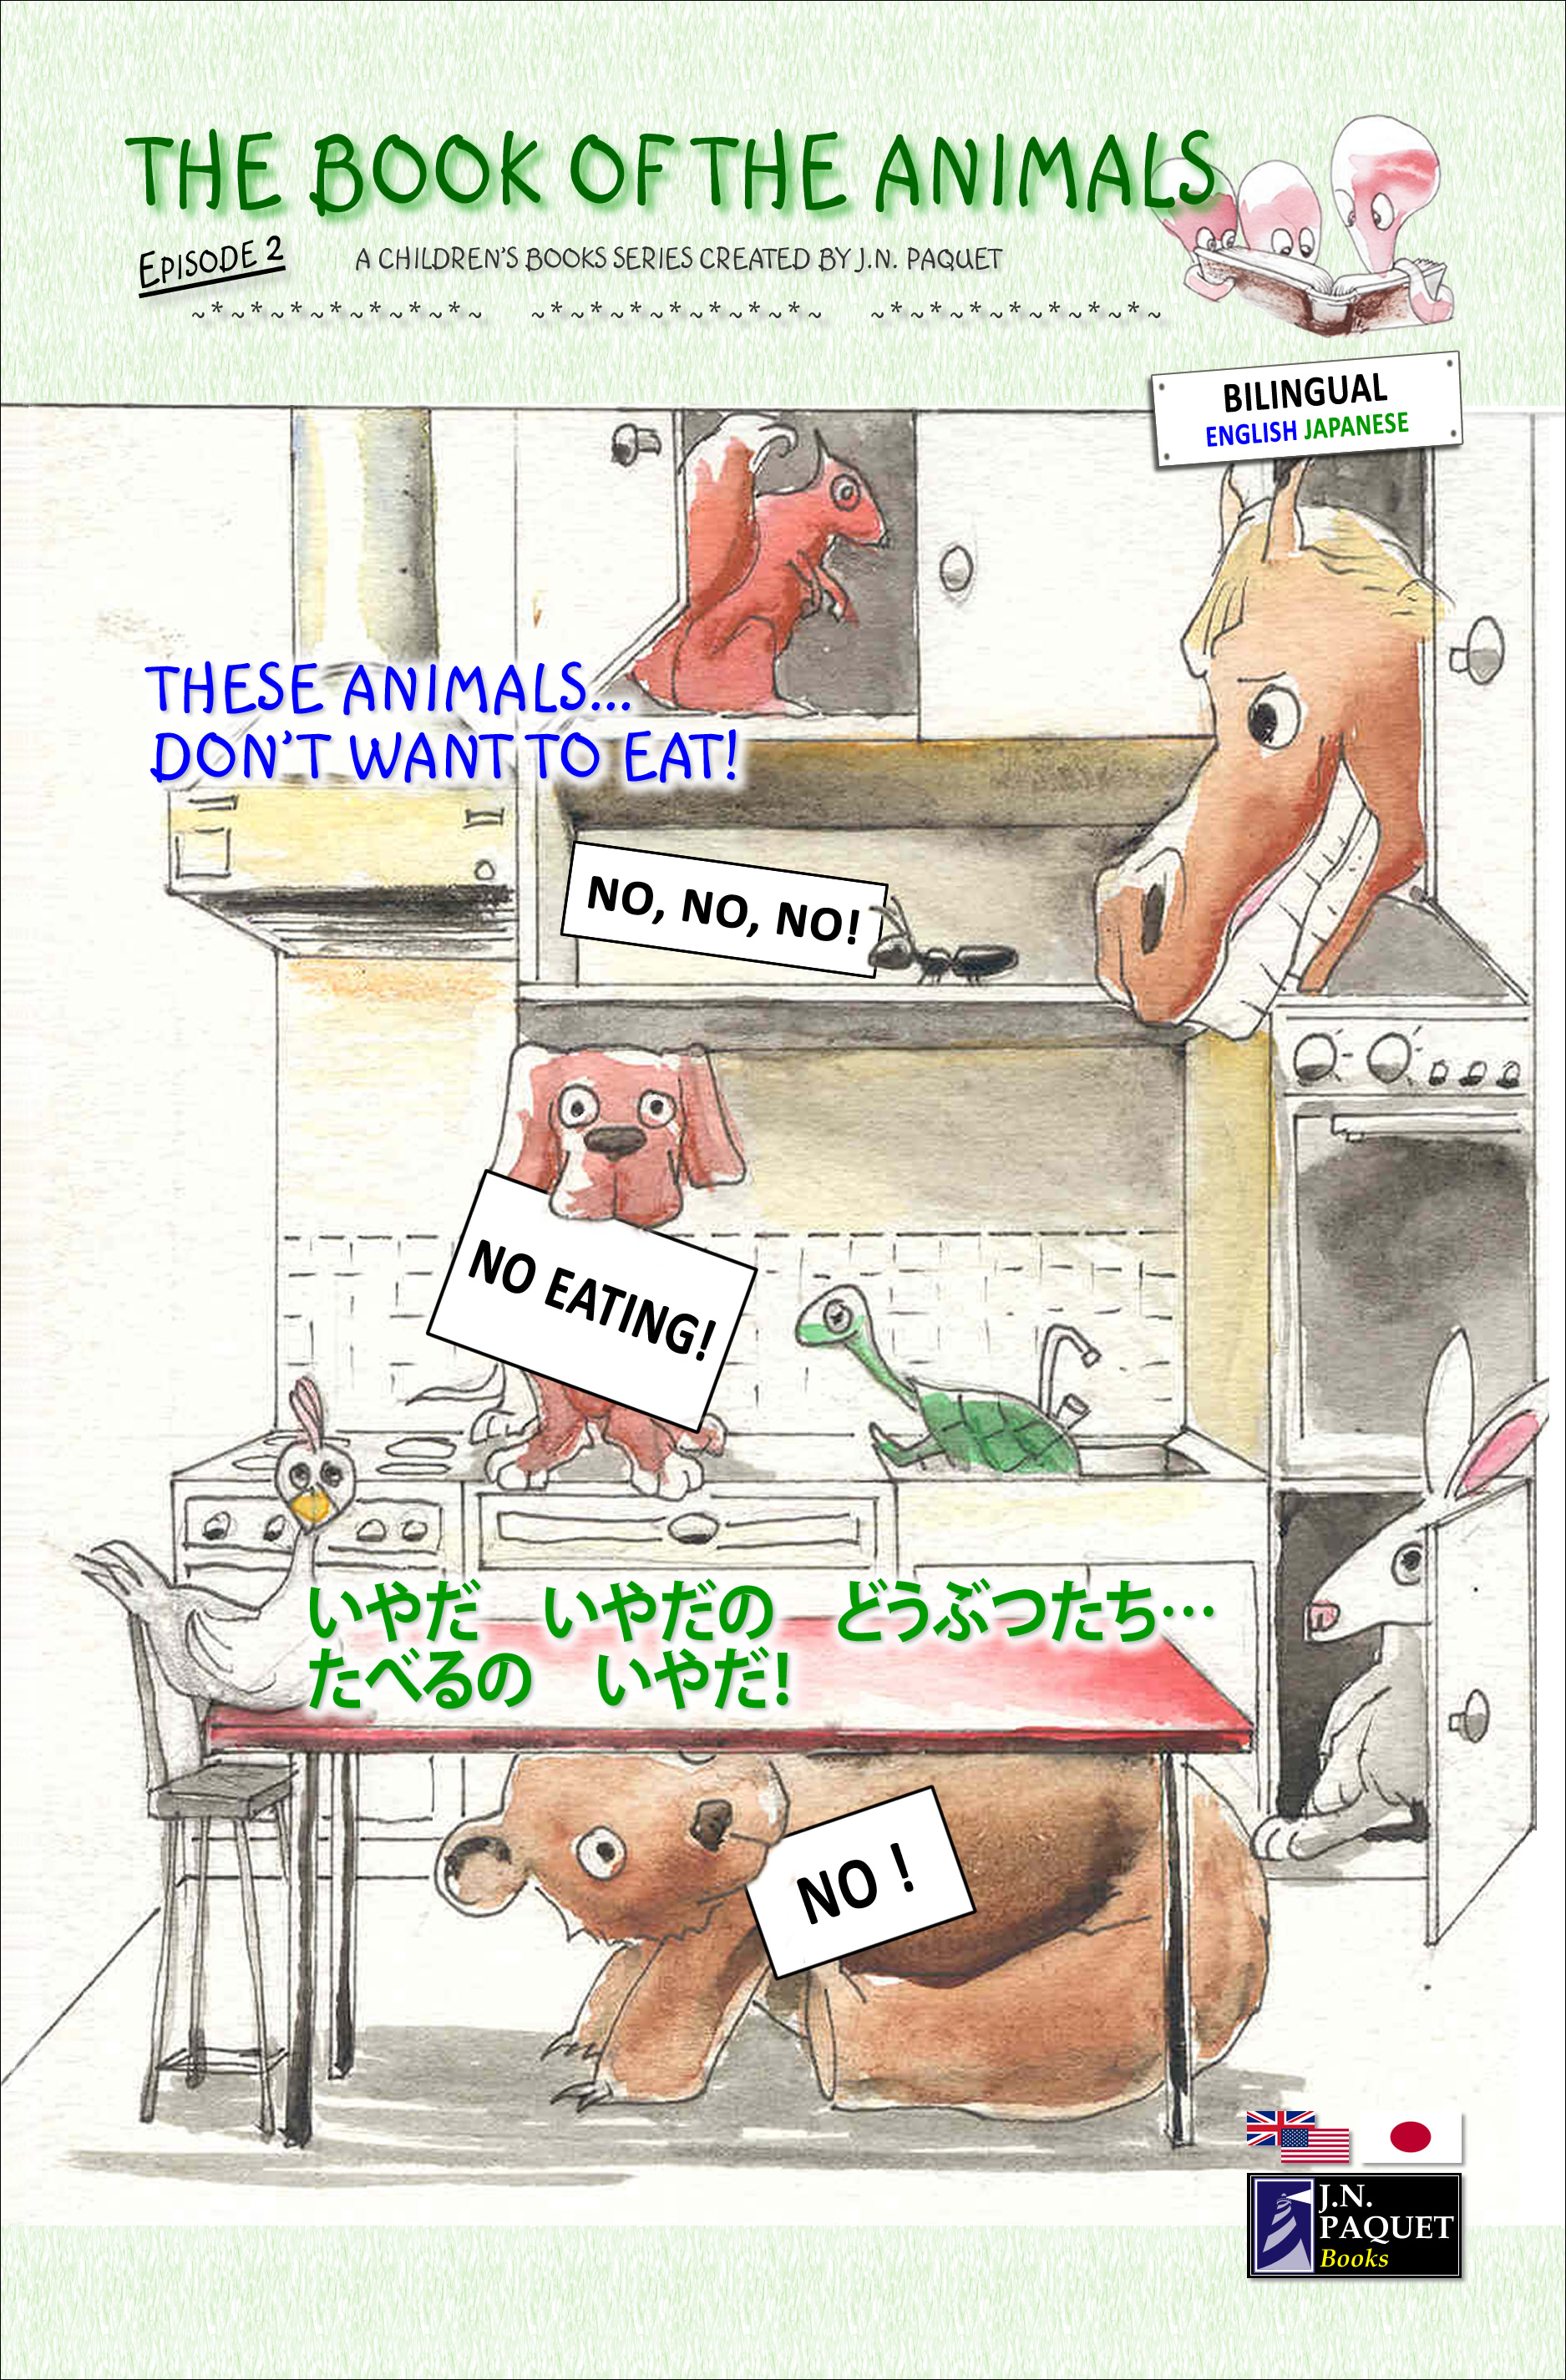 The Book of The Animals - Episode 2 (Bilingual English-Japanese) By: J.N. PAQUET